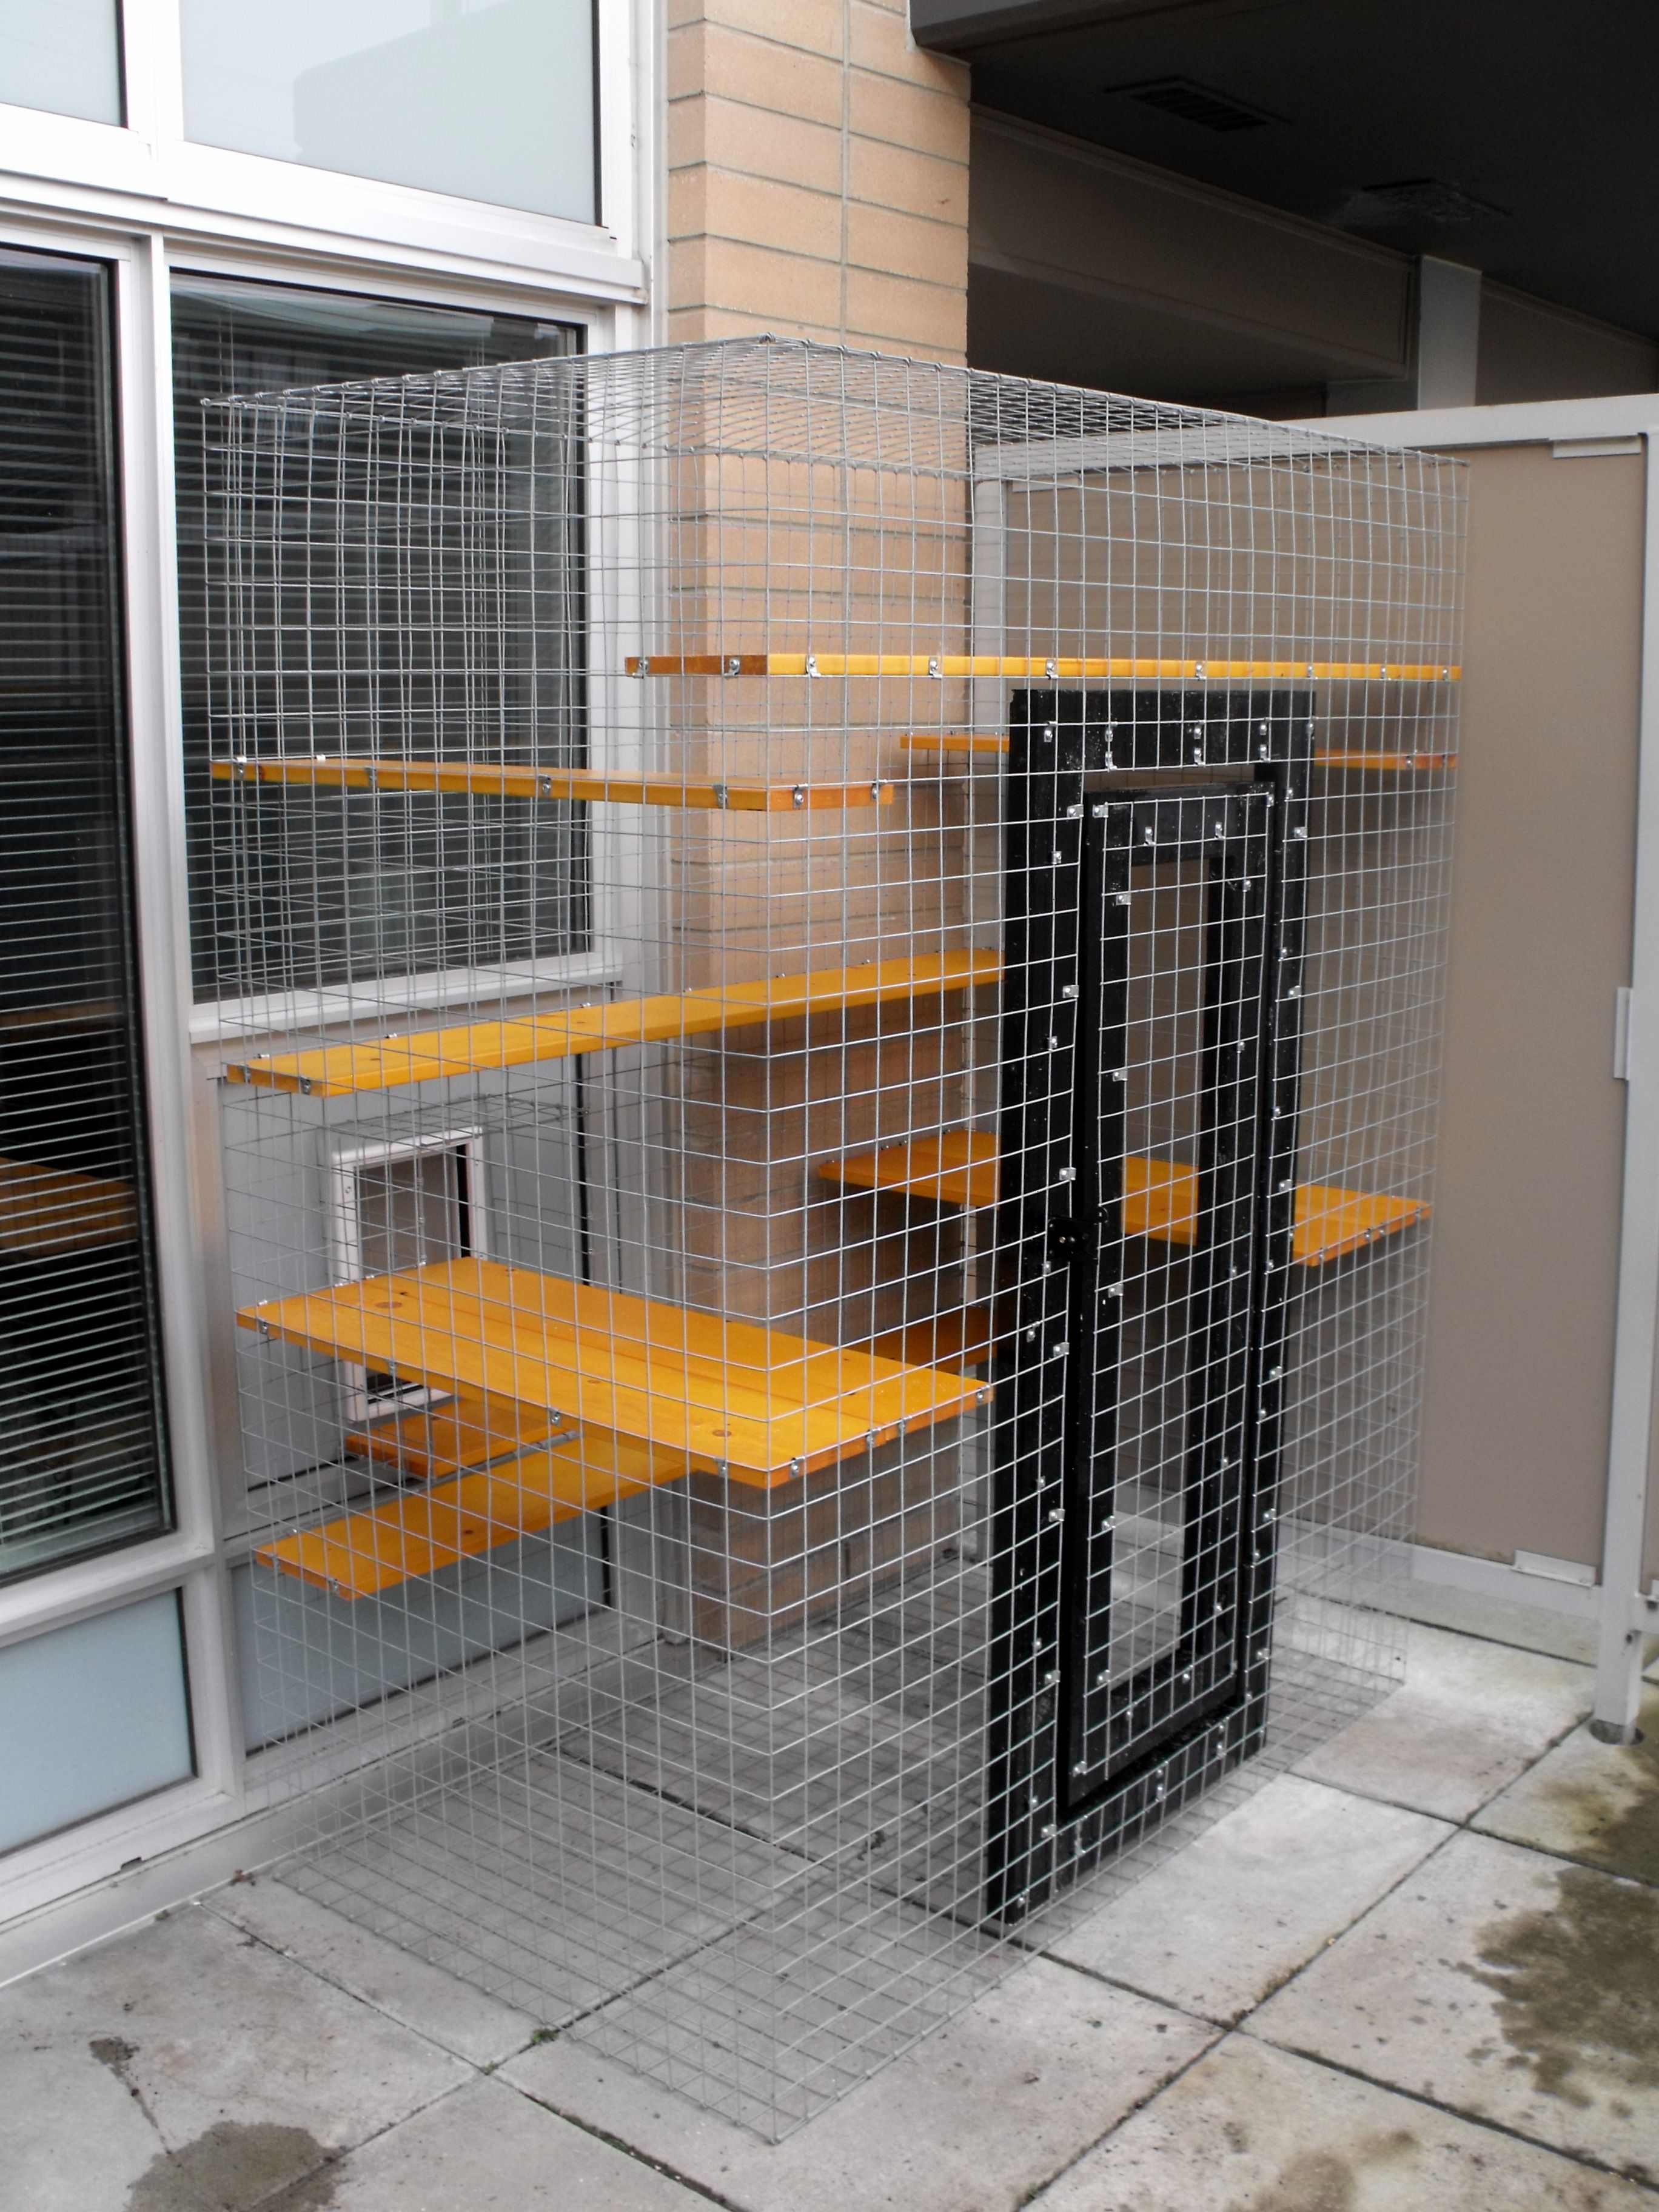 A Patio Cat Enclosure In A High Rise Condo Beautiful World Living  Environments Www.abeautifulwor